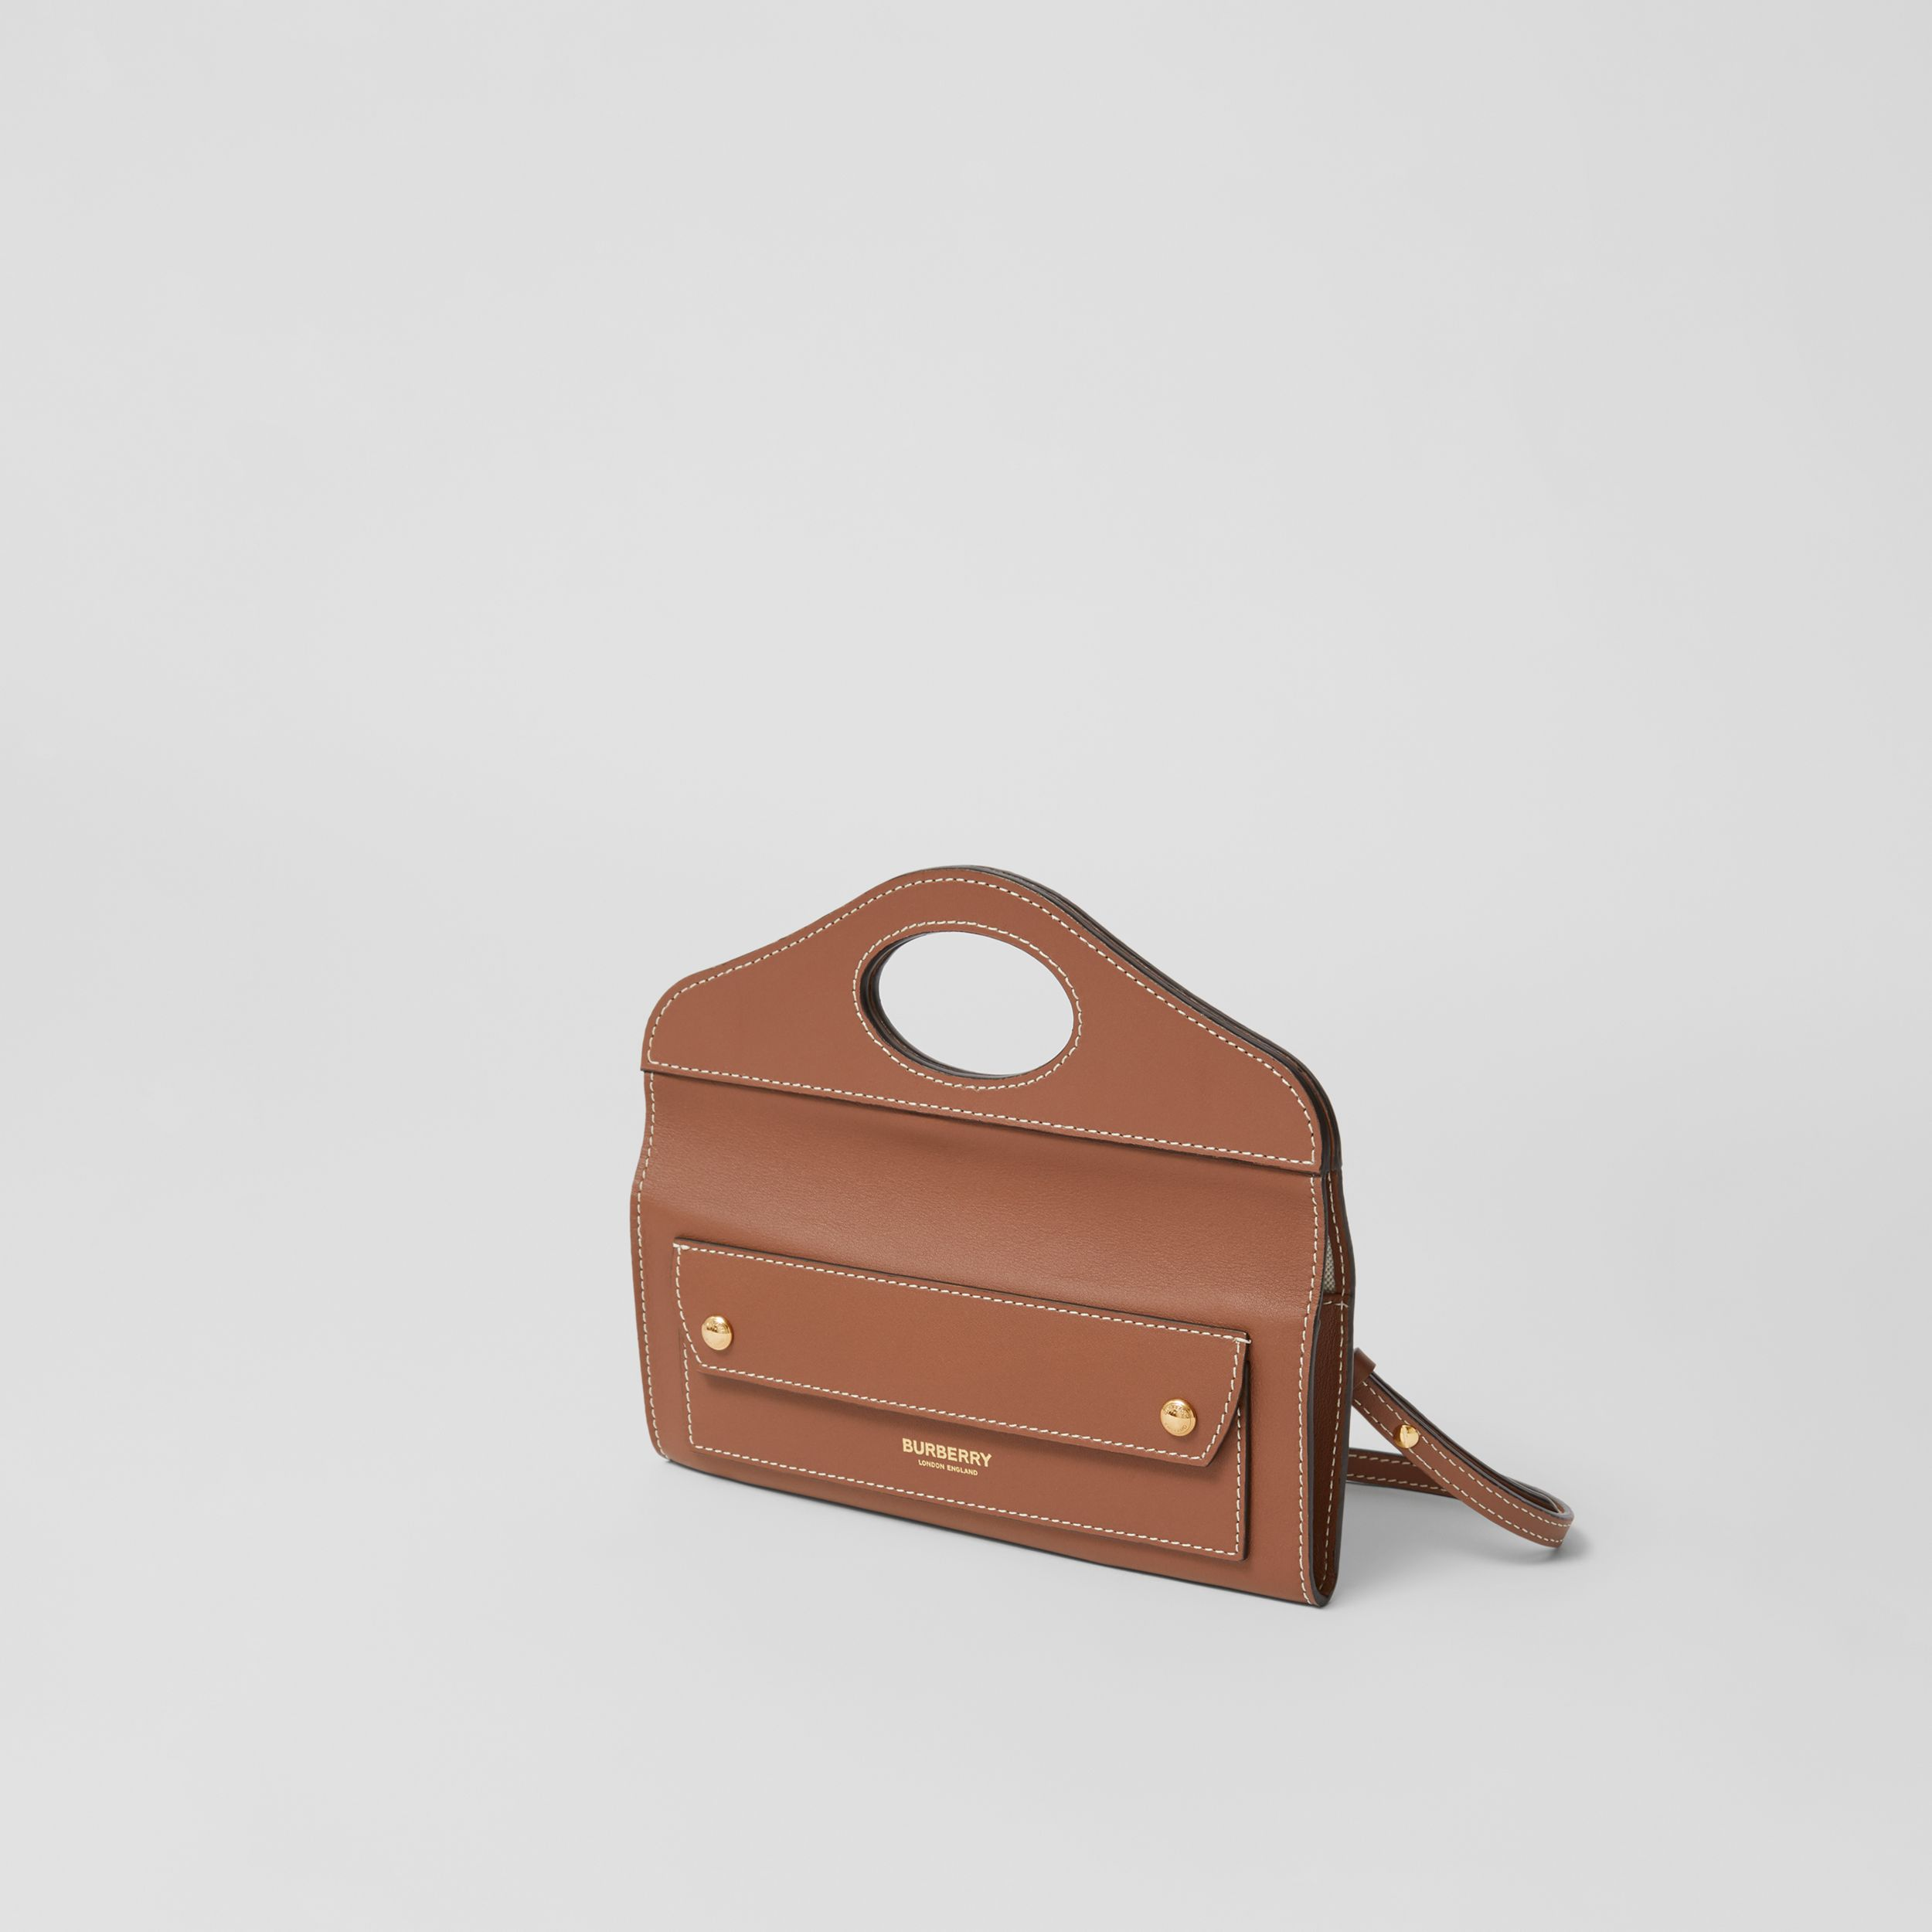 Mini Topstitched Lambskin Pocket Clutch in Malt Brown - Women | Burberry - 4